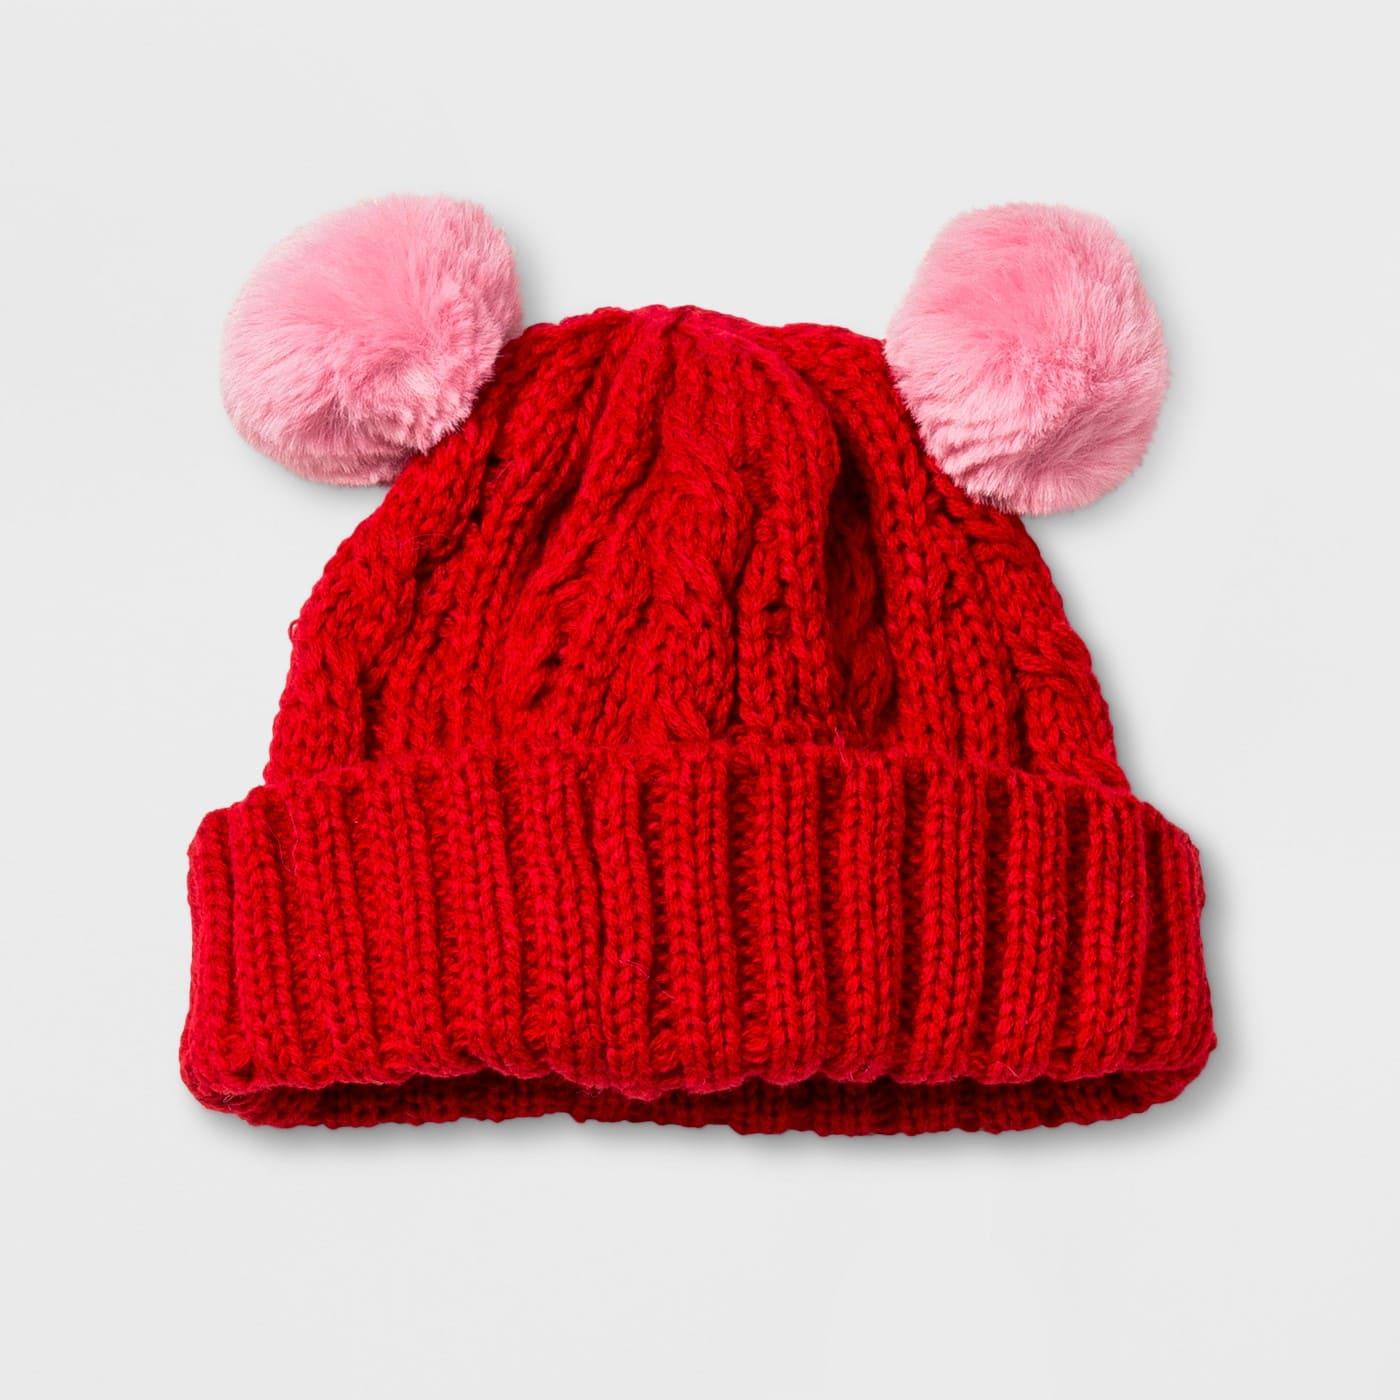 Cat   Jack Baby Cable Beanie with Poms  3.79 w Red Card - Target - Free  Shipping 43469956300